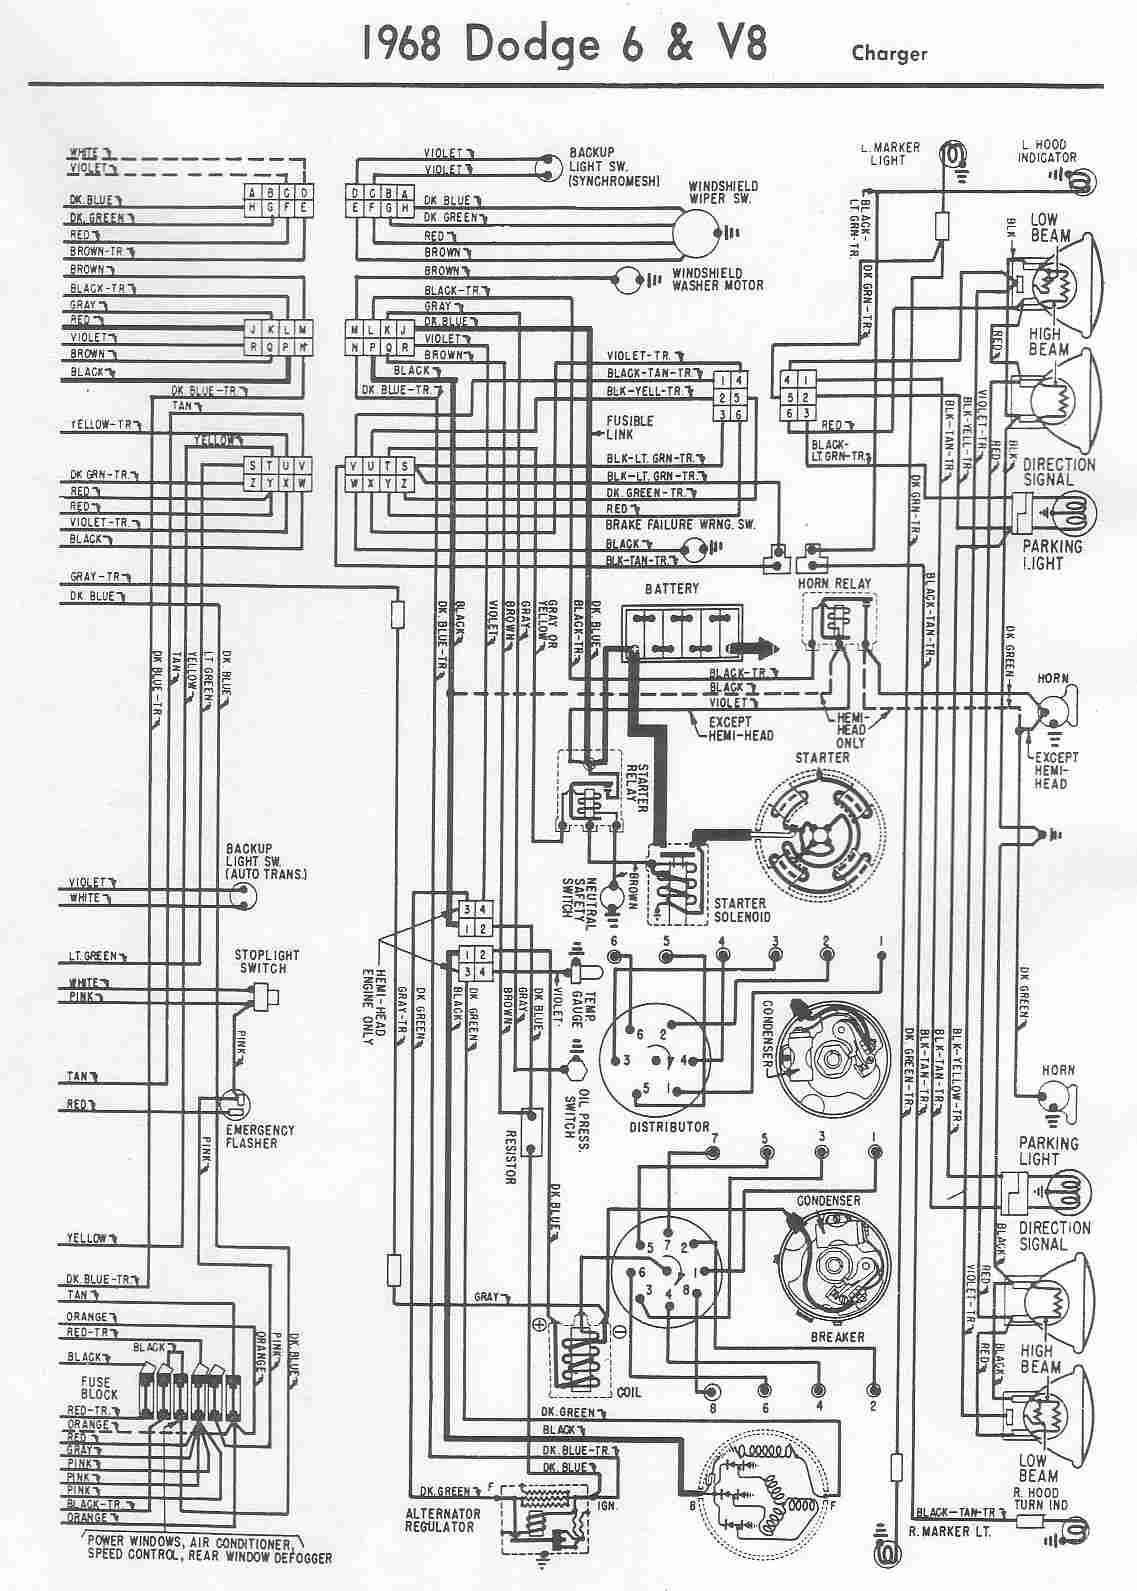 charger electrical wiring diagram of 1968 dodge 6 and v8?t=1508404771 dodge car manuals, wiring diagrams pdf & fault codes 1970 dodge coronet wiring diagram at couponss.co